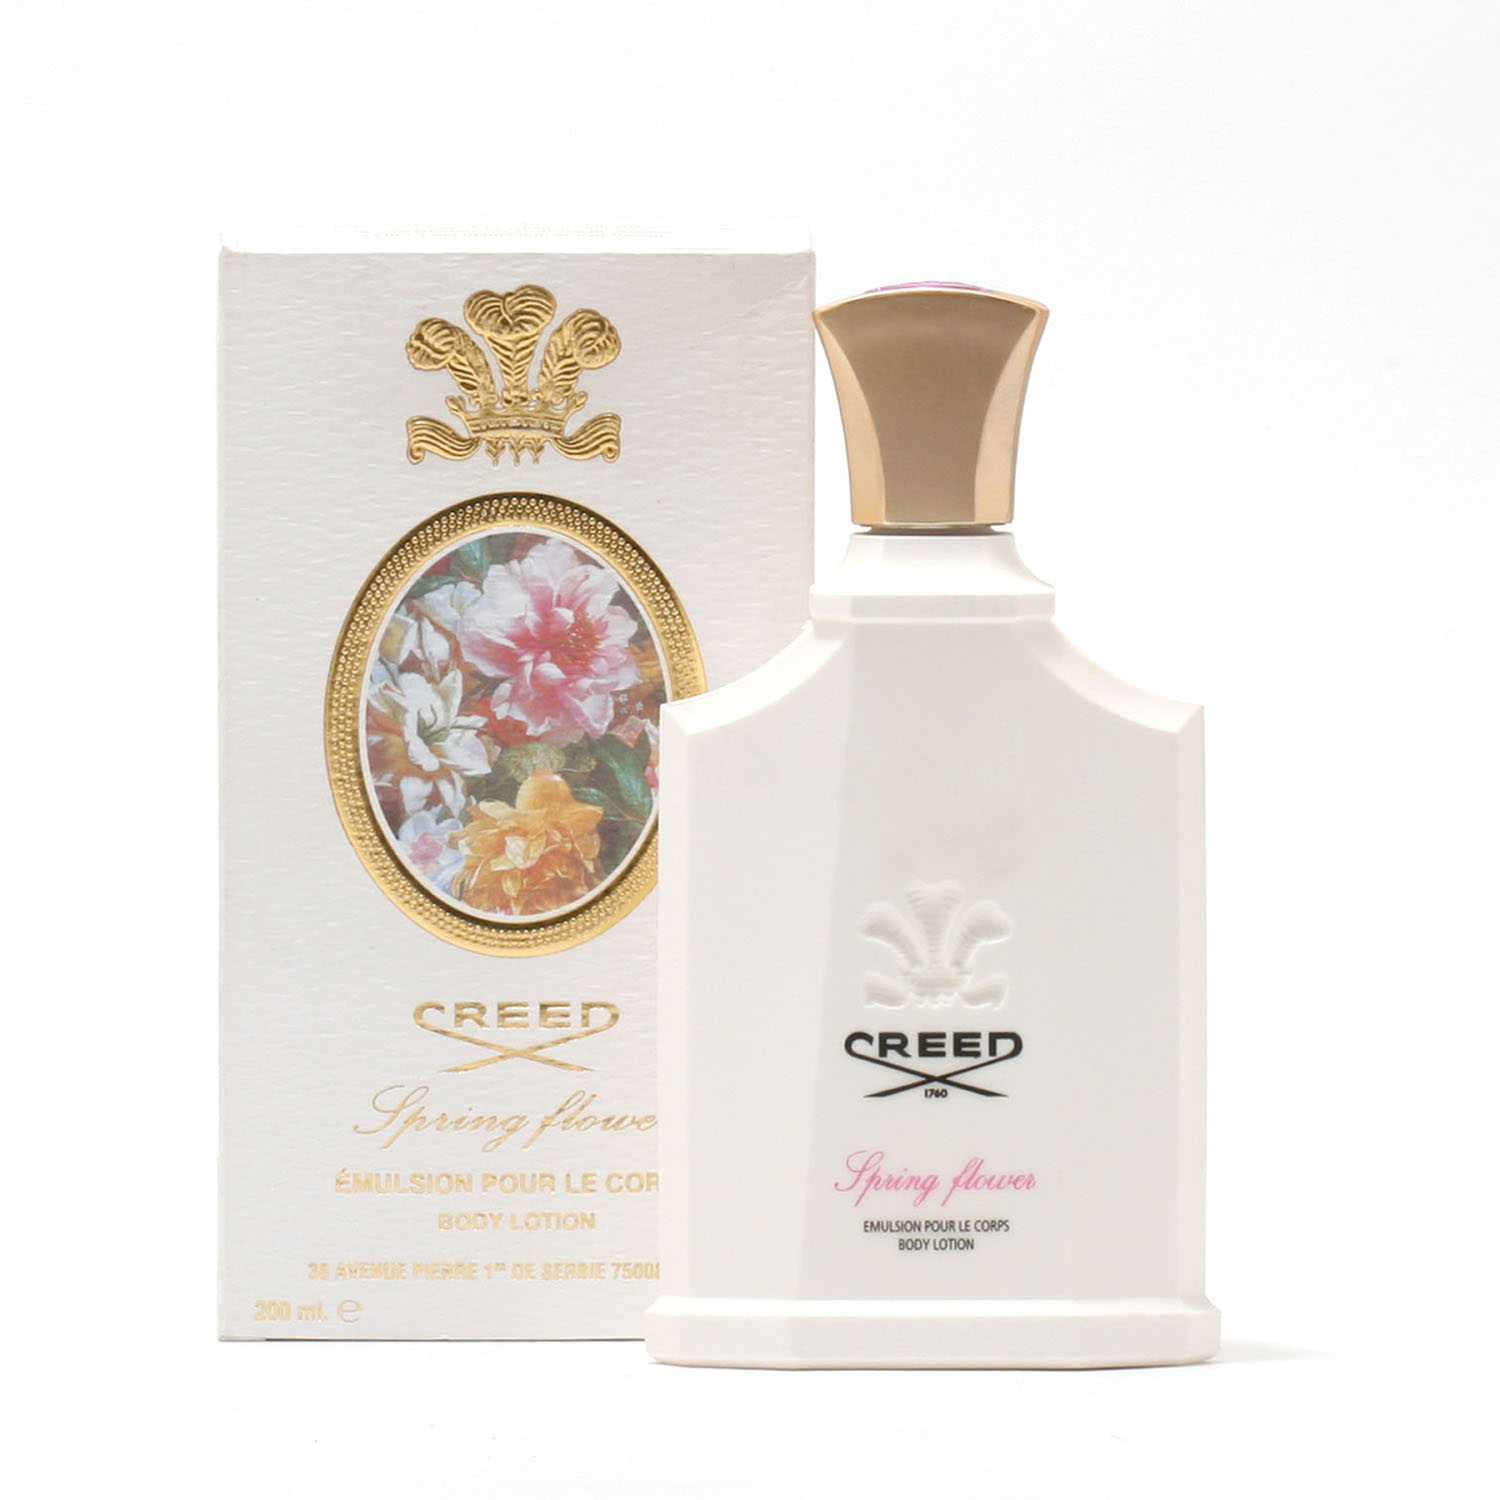 Creed Spring Flower Body Lotion 15718492